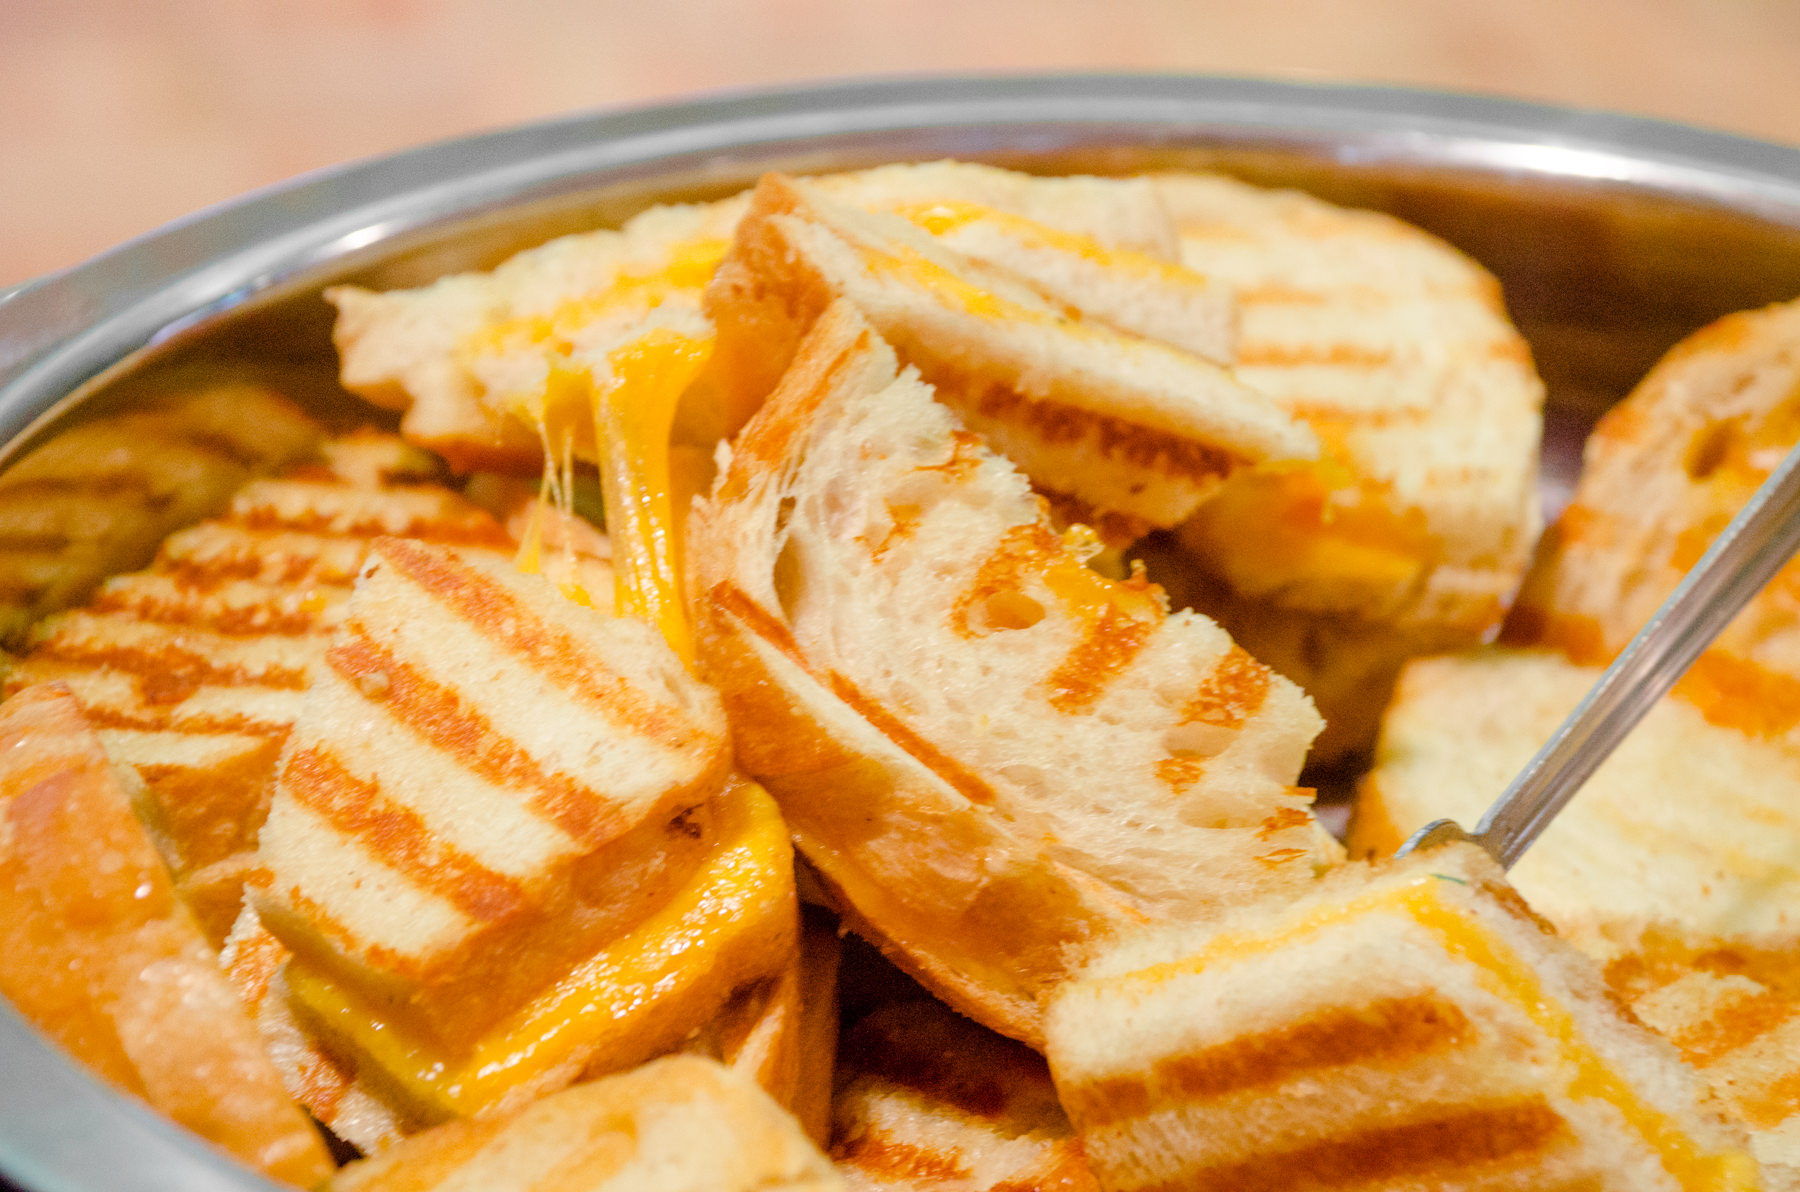 Grilled Cheese at Bat Mitzvah - Catering by Seasons (1 of 1)